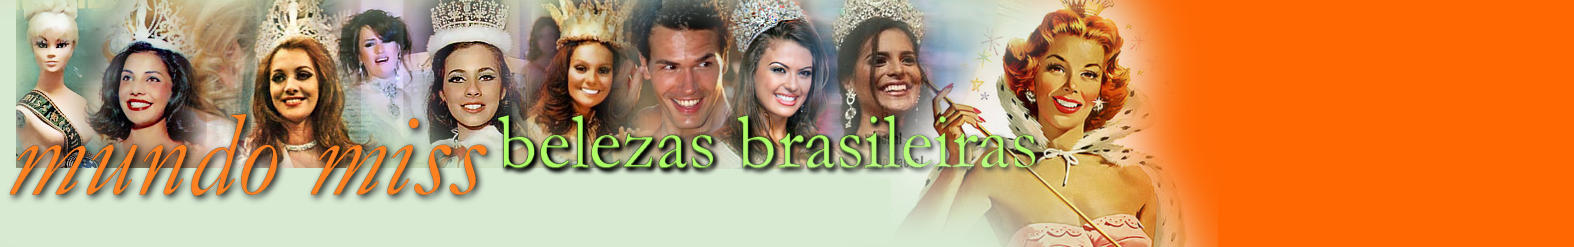 Mundo Miss